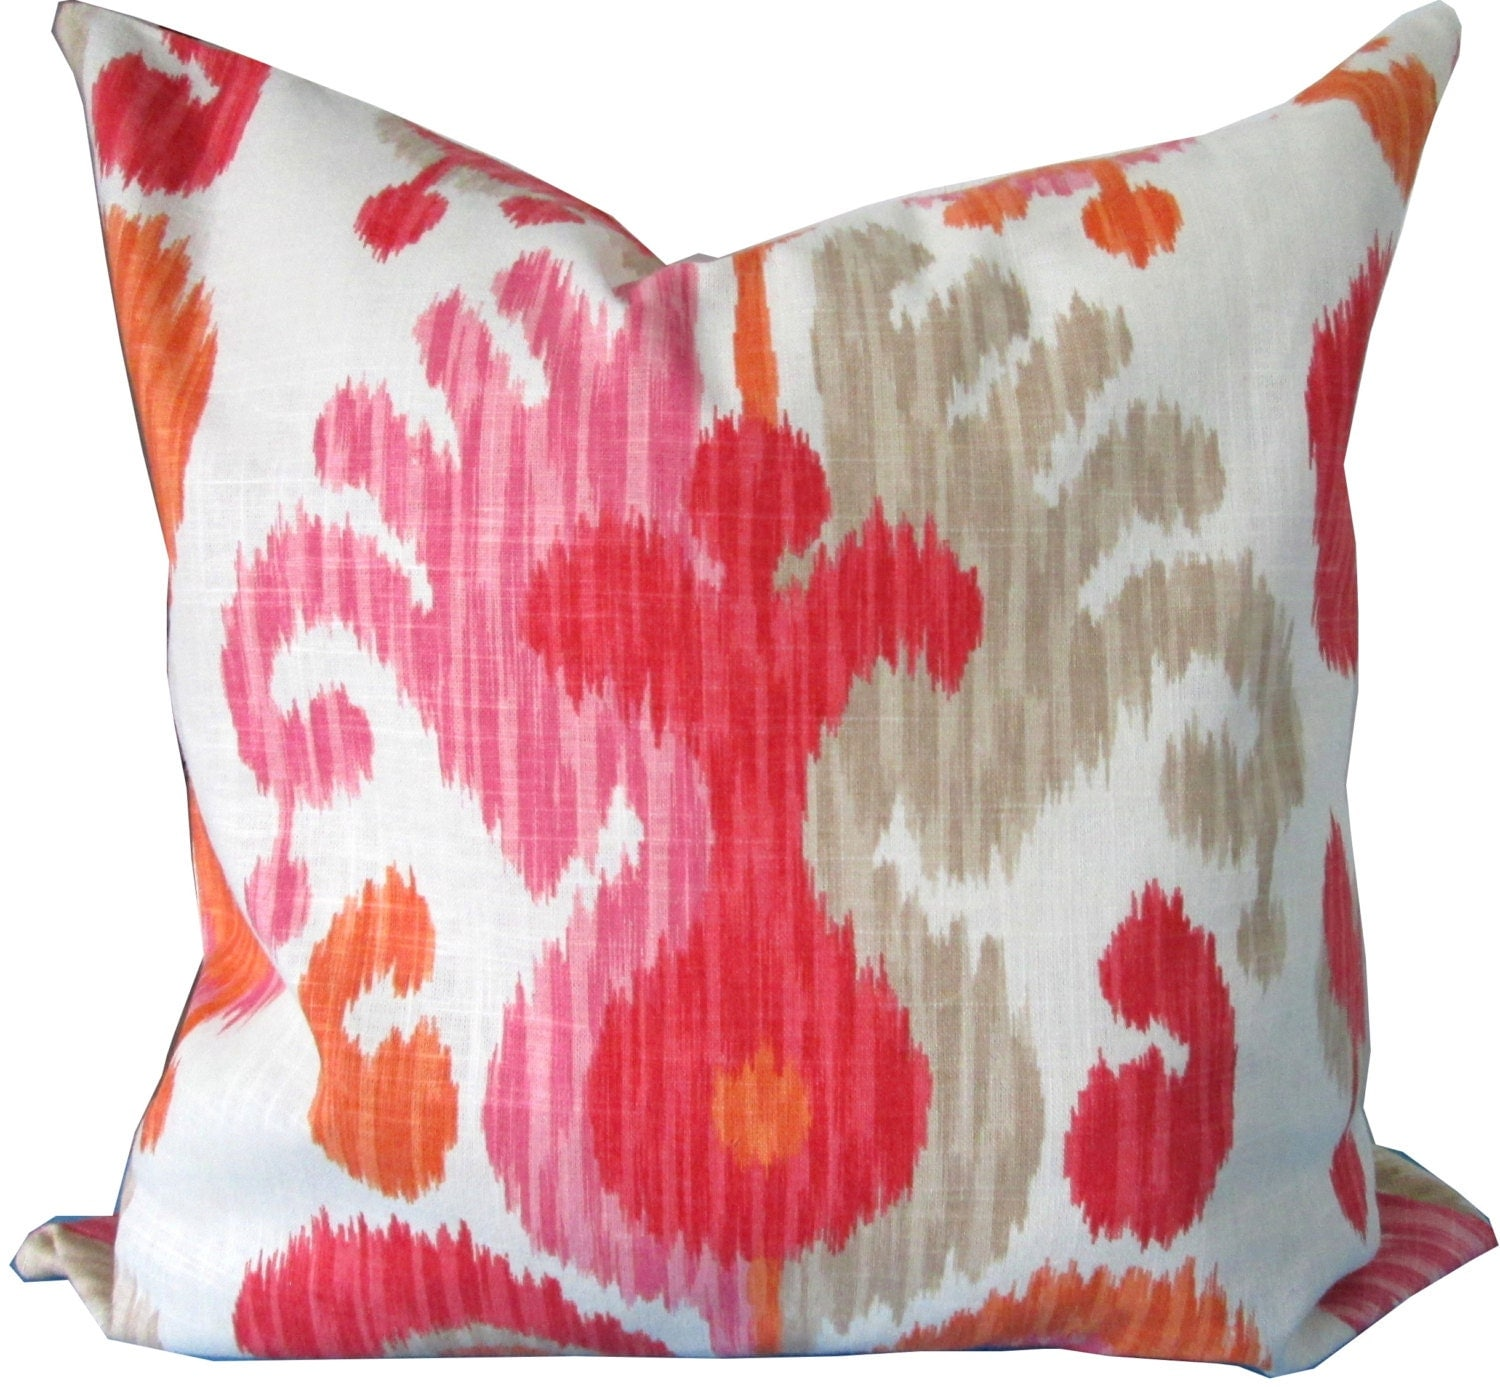 Pink And Orange Decorative Pillows : Pink And Orange Ikat Decorative Pillow Cover-Accent